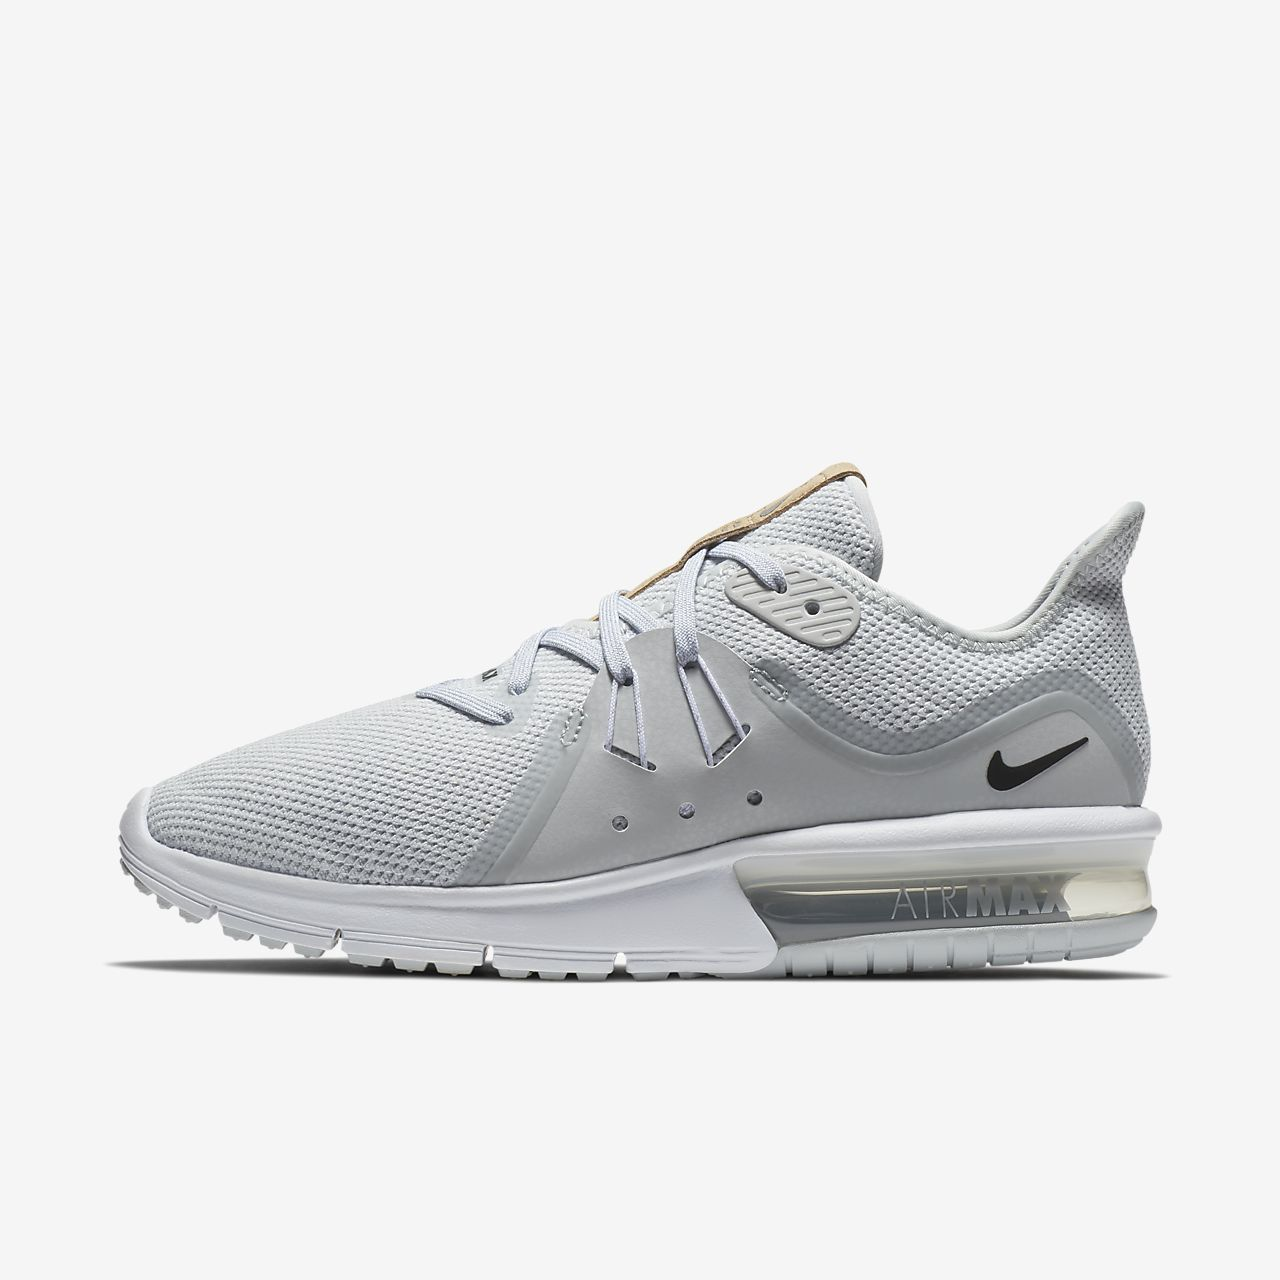 buy popular 94d39 a7bb0 ... Nike Air Max Sequent 3 Women s Shoe